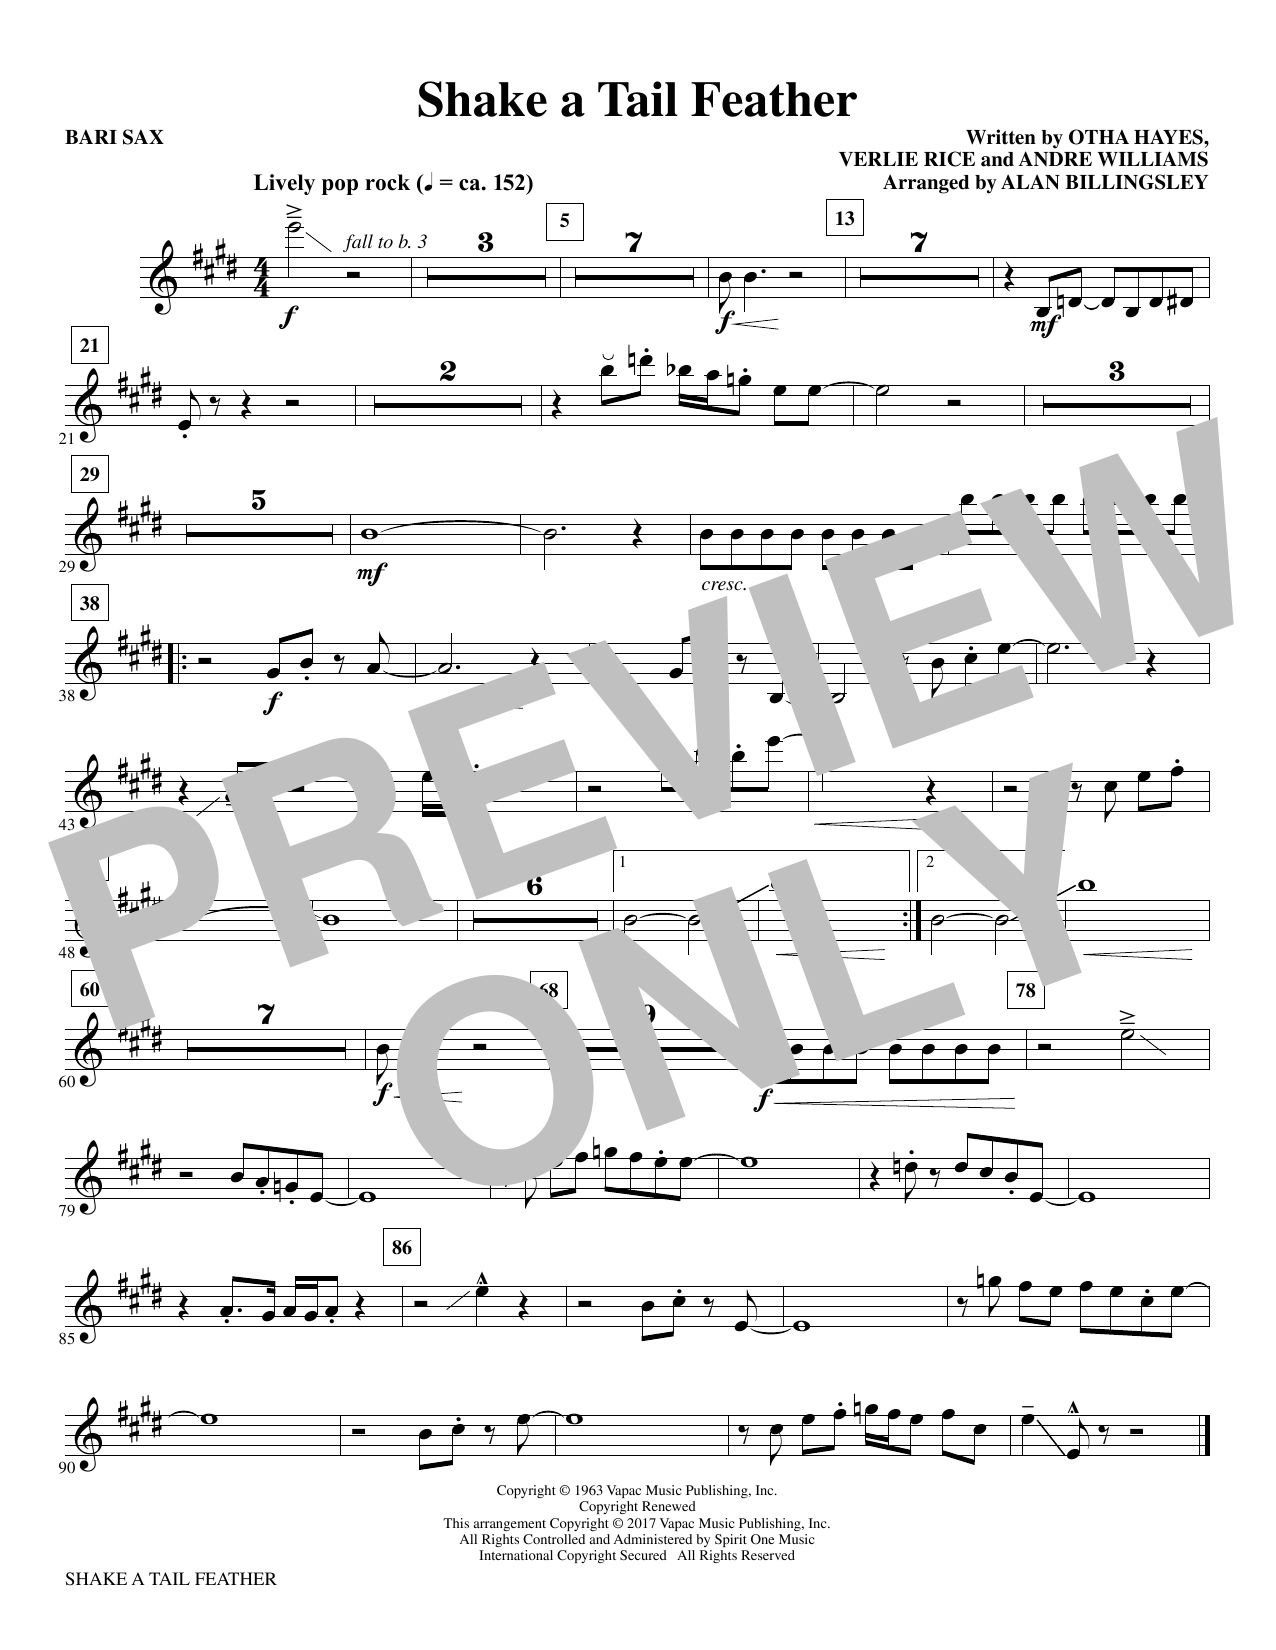 Download Alan Billingsley 'Shake a Tail Feather - Baritone Sax' Digital Sheet Music Notes & Chords and start playing in minutes